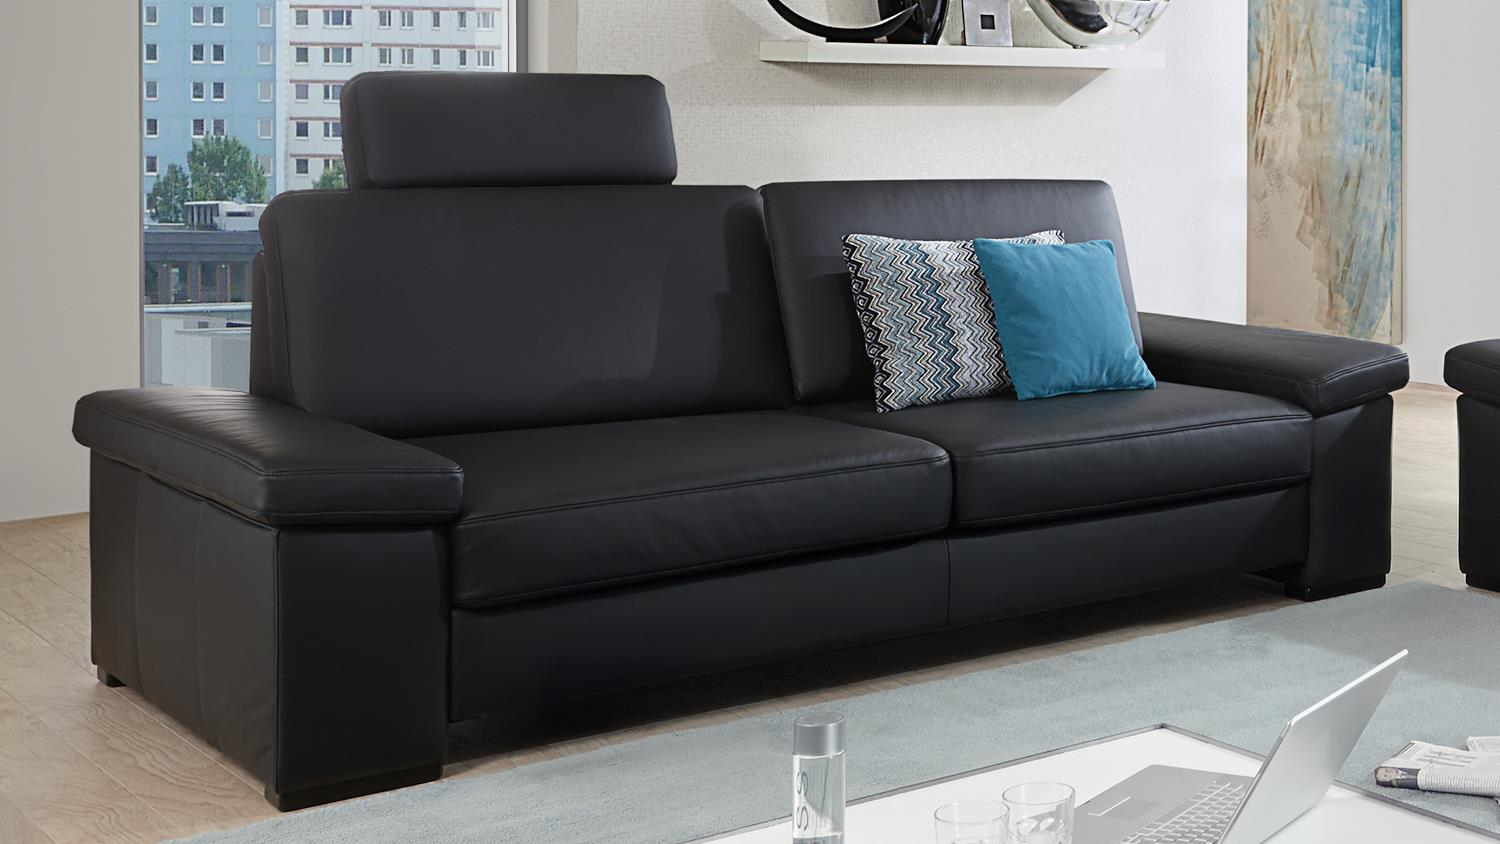 sofa puzzle 3 sitzer in lederlook schwarz mit federkern. Black Bedroom Furniture Sets. Home Design Ideas